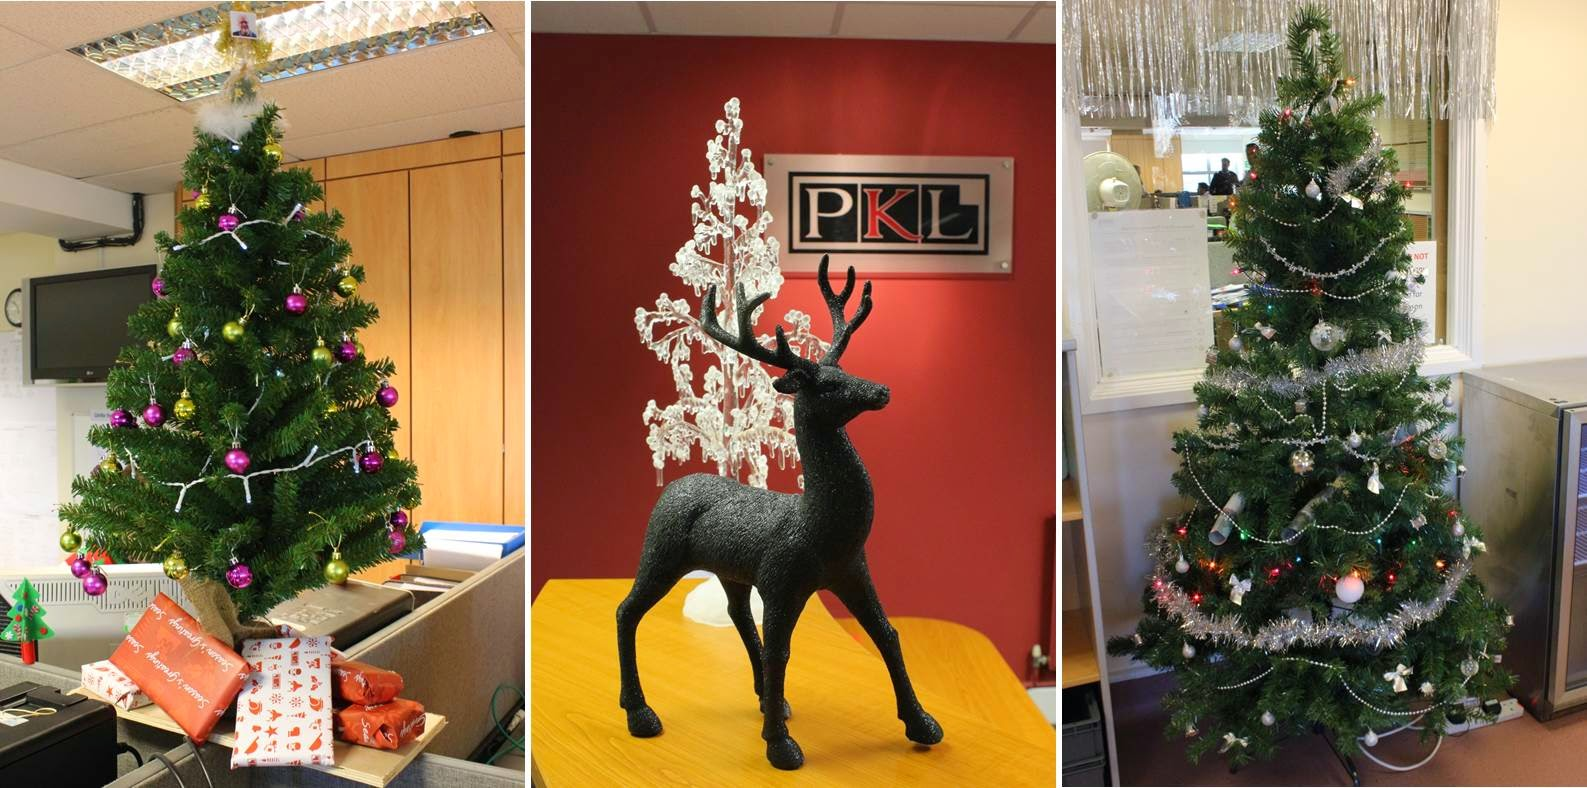 PKL Christmas - trees and decorations